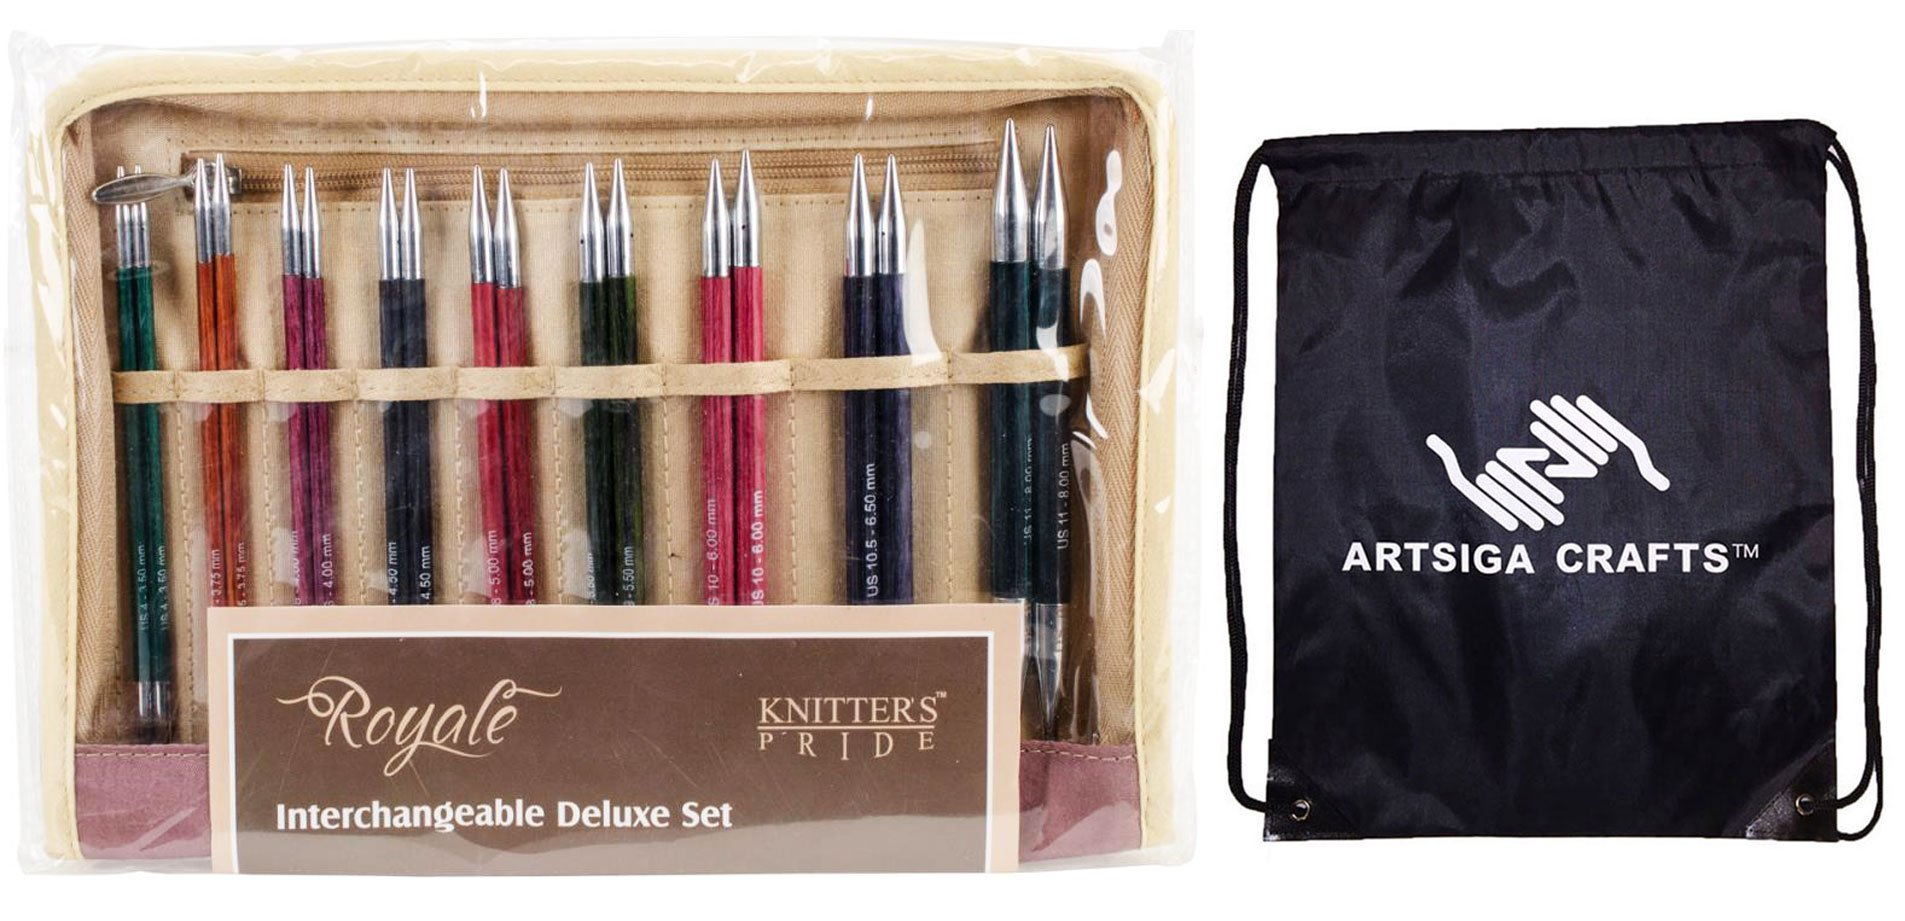 Knitter's Pride Knitting Needles Royale Interchangeable Deluxe Long Tip Set Deluxe Set (Normal IC) Bundle with 1 Artsiga Crafts Project Bag 220351